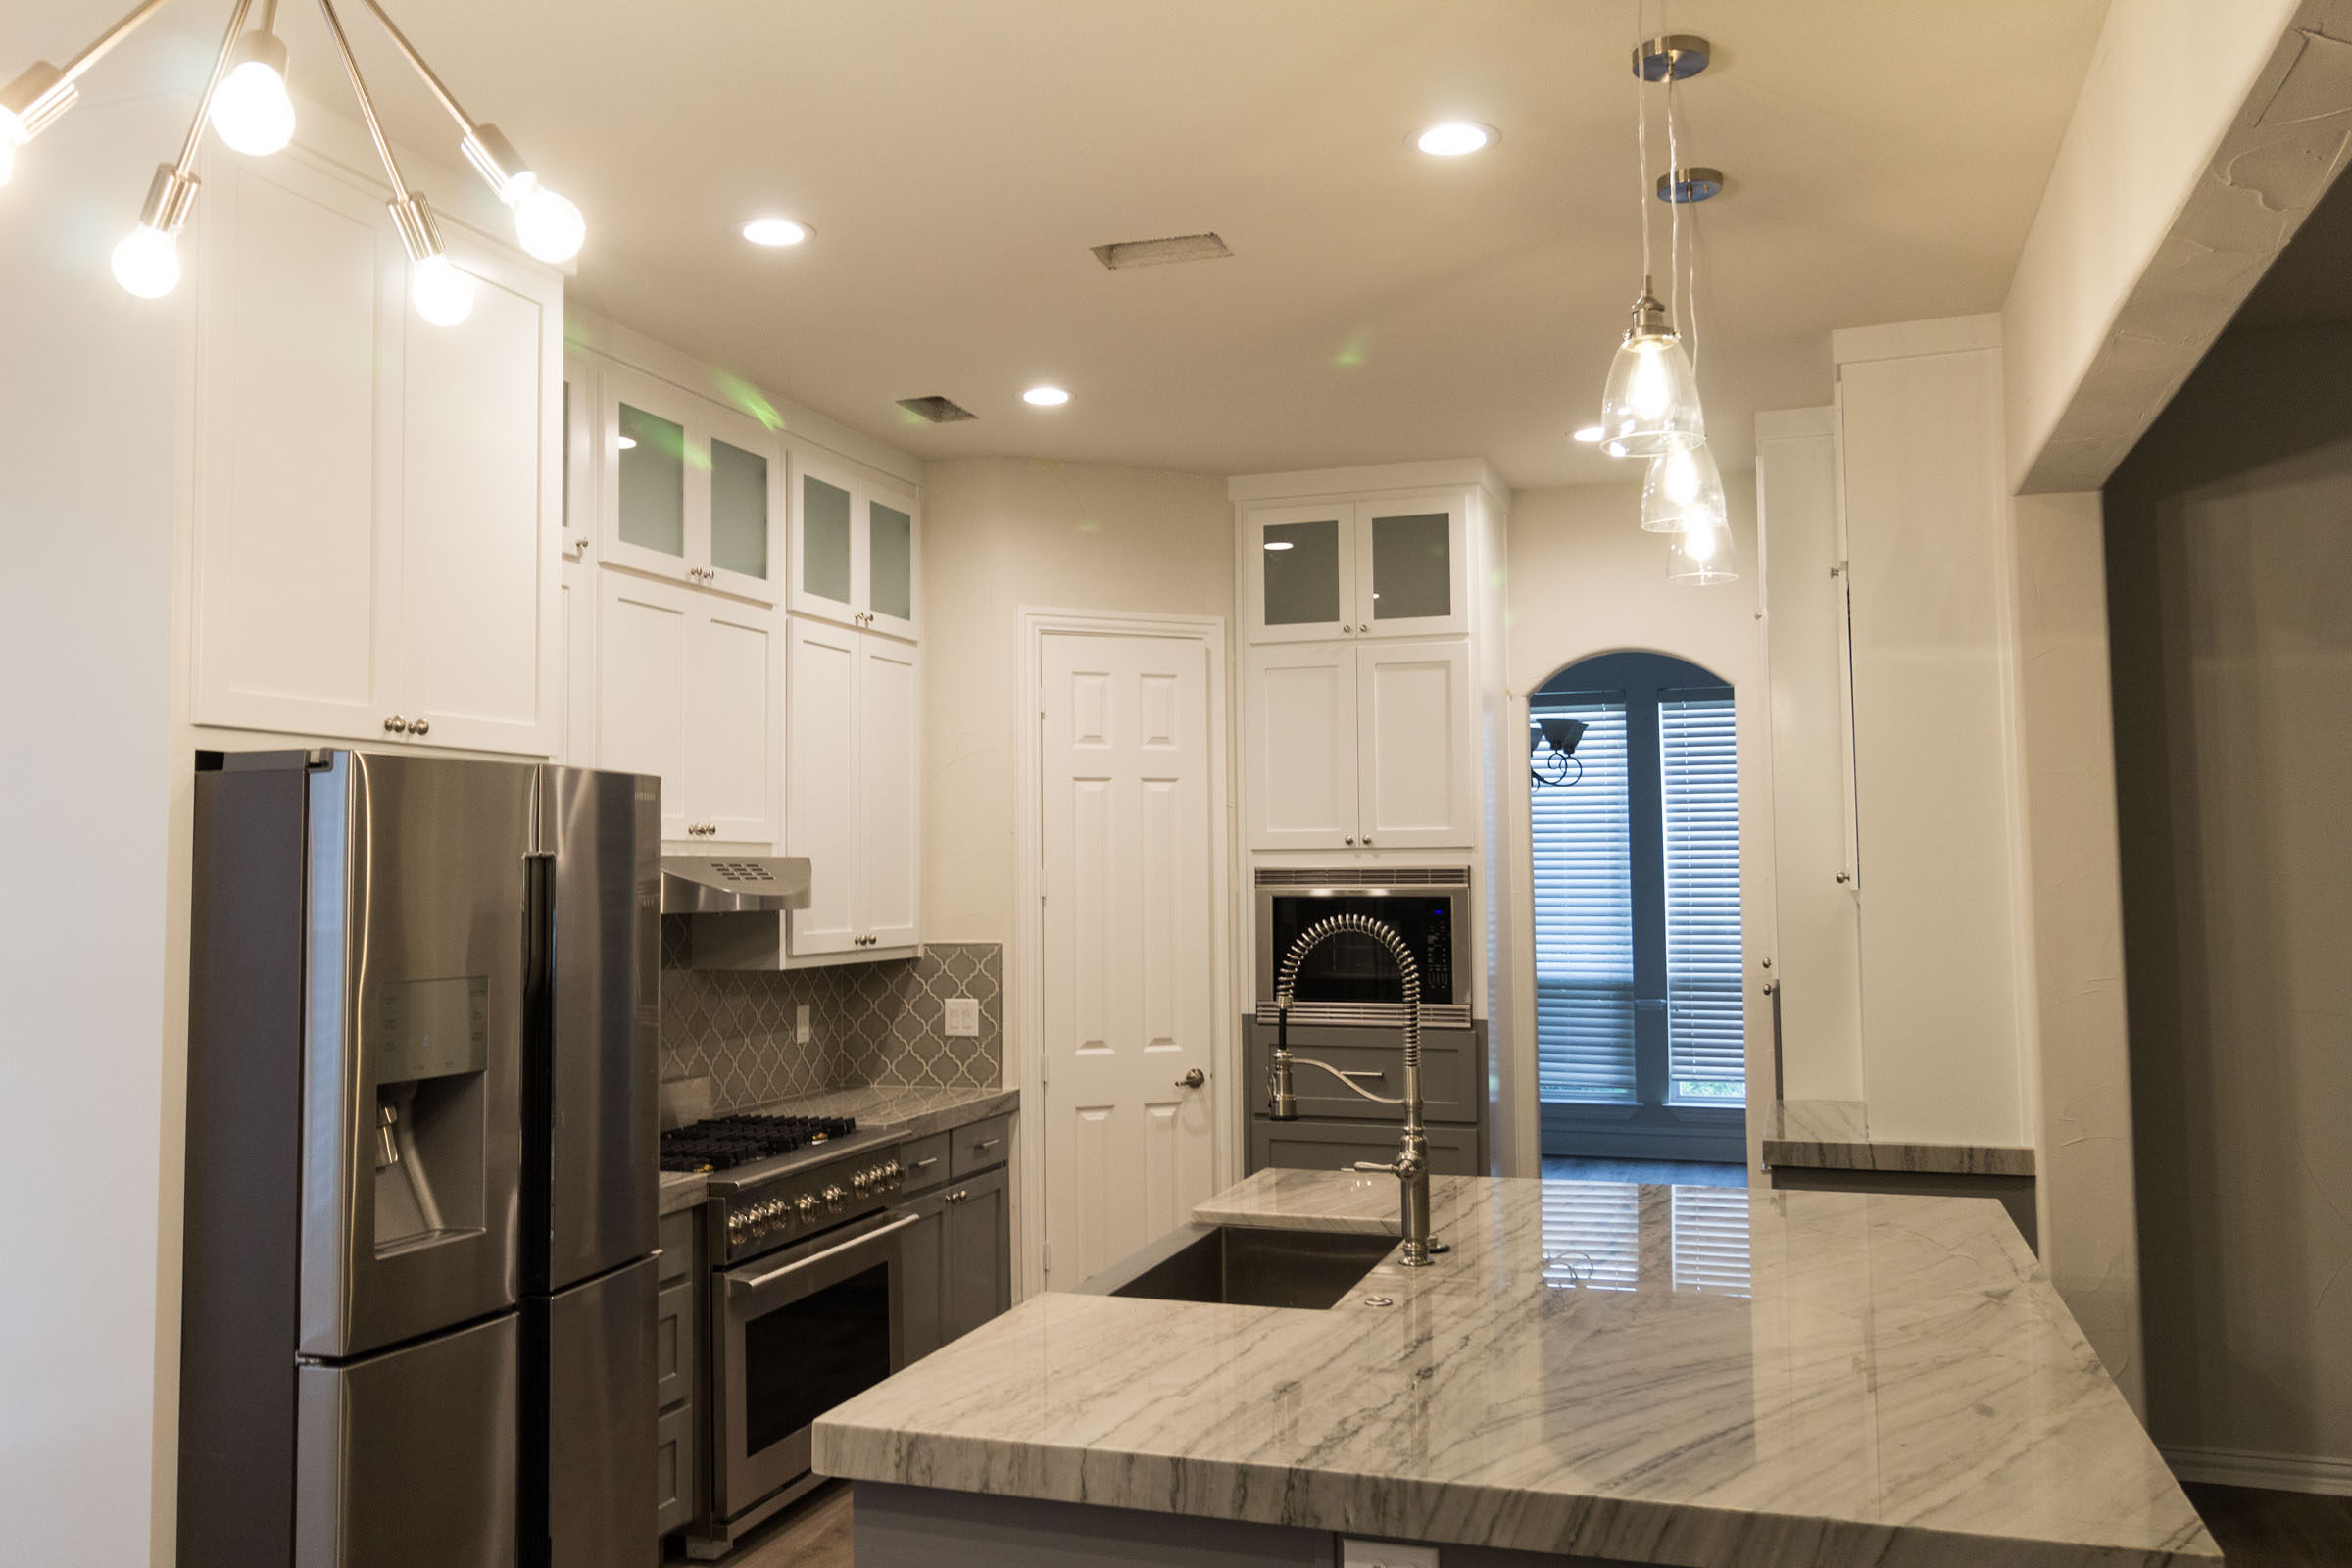 Contemporary kitchen remodel with exposed bulb lighting in the breakfast nook, kitchen island, stainless steel appliances